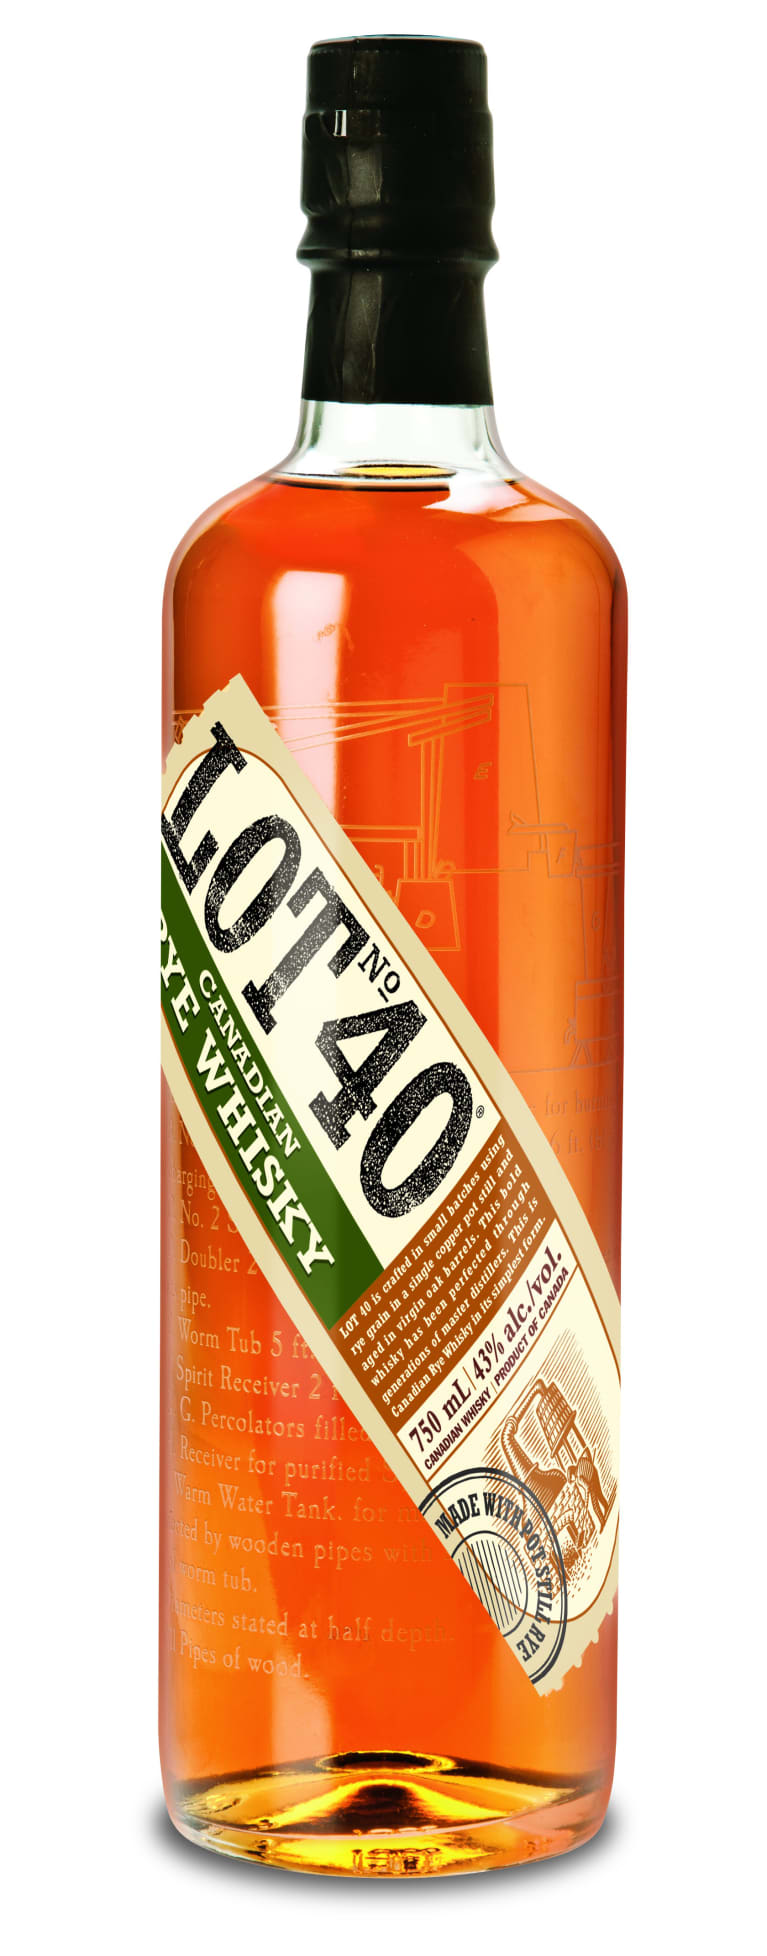 Lot 40 Rye Canadian Whisky  Front Bottle Shot